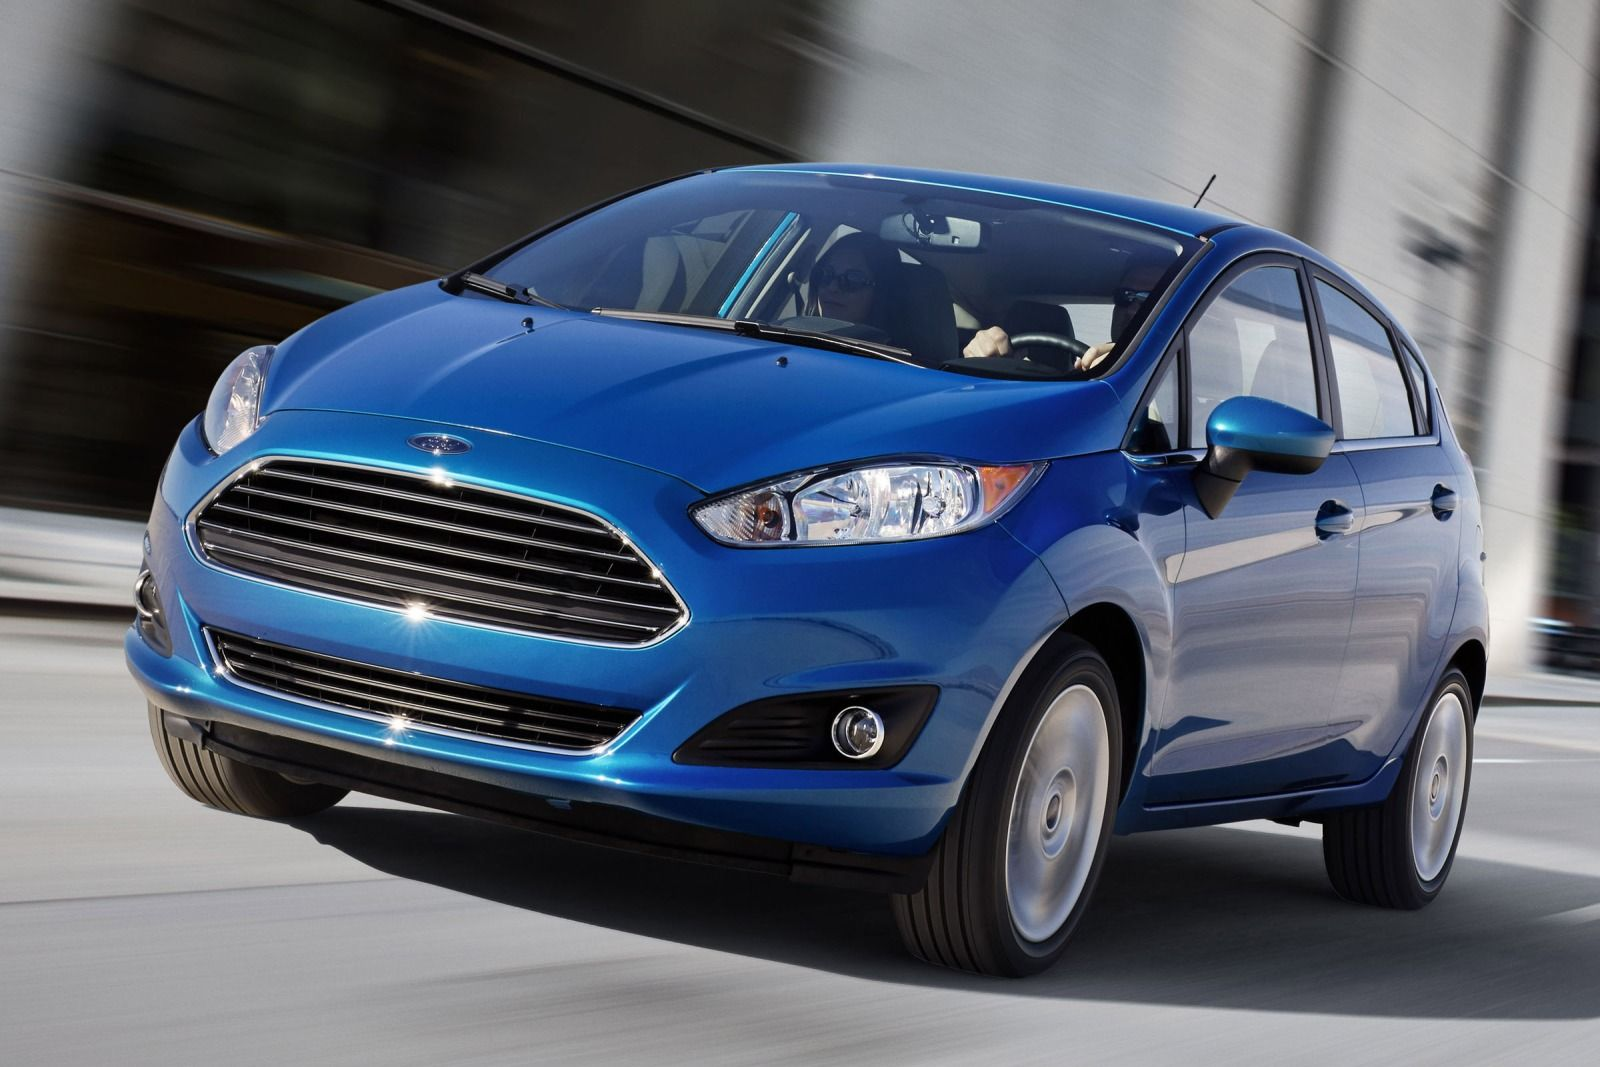 Ford Fiesta New Model 2016 Model Ford Fiesta Uygun Taşıt